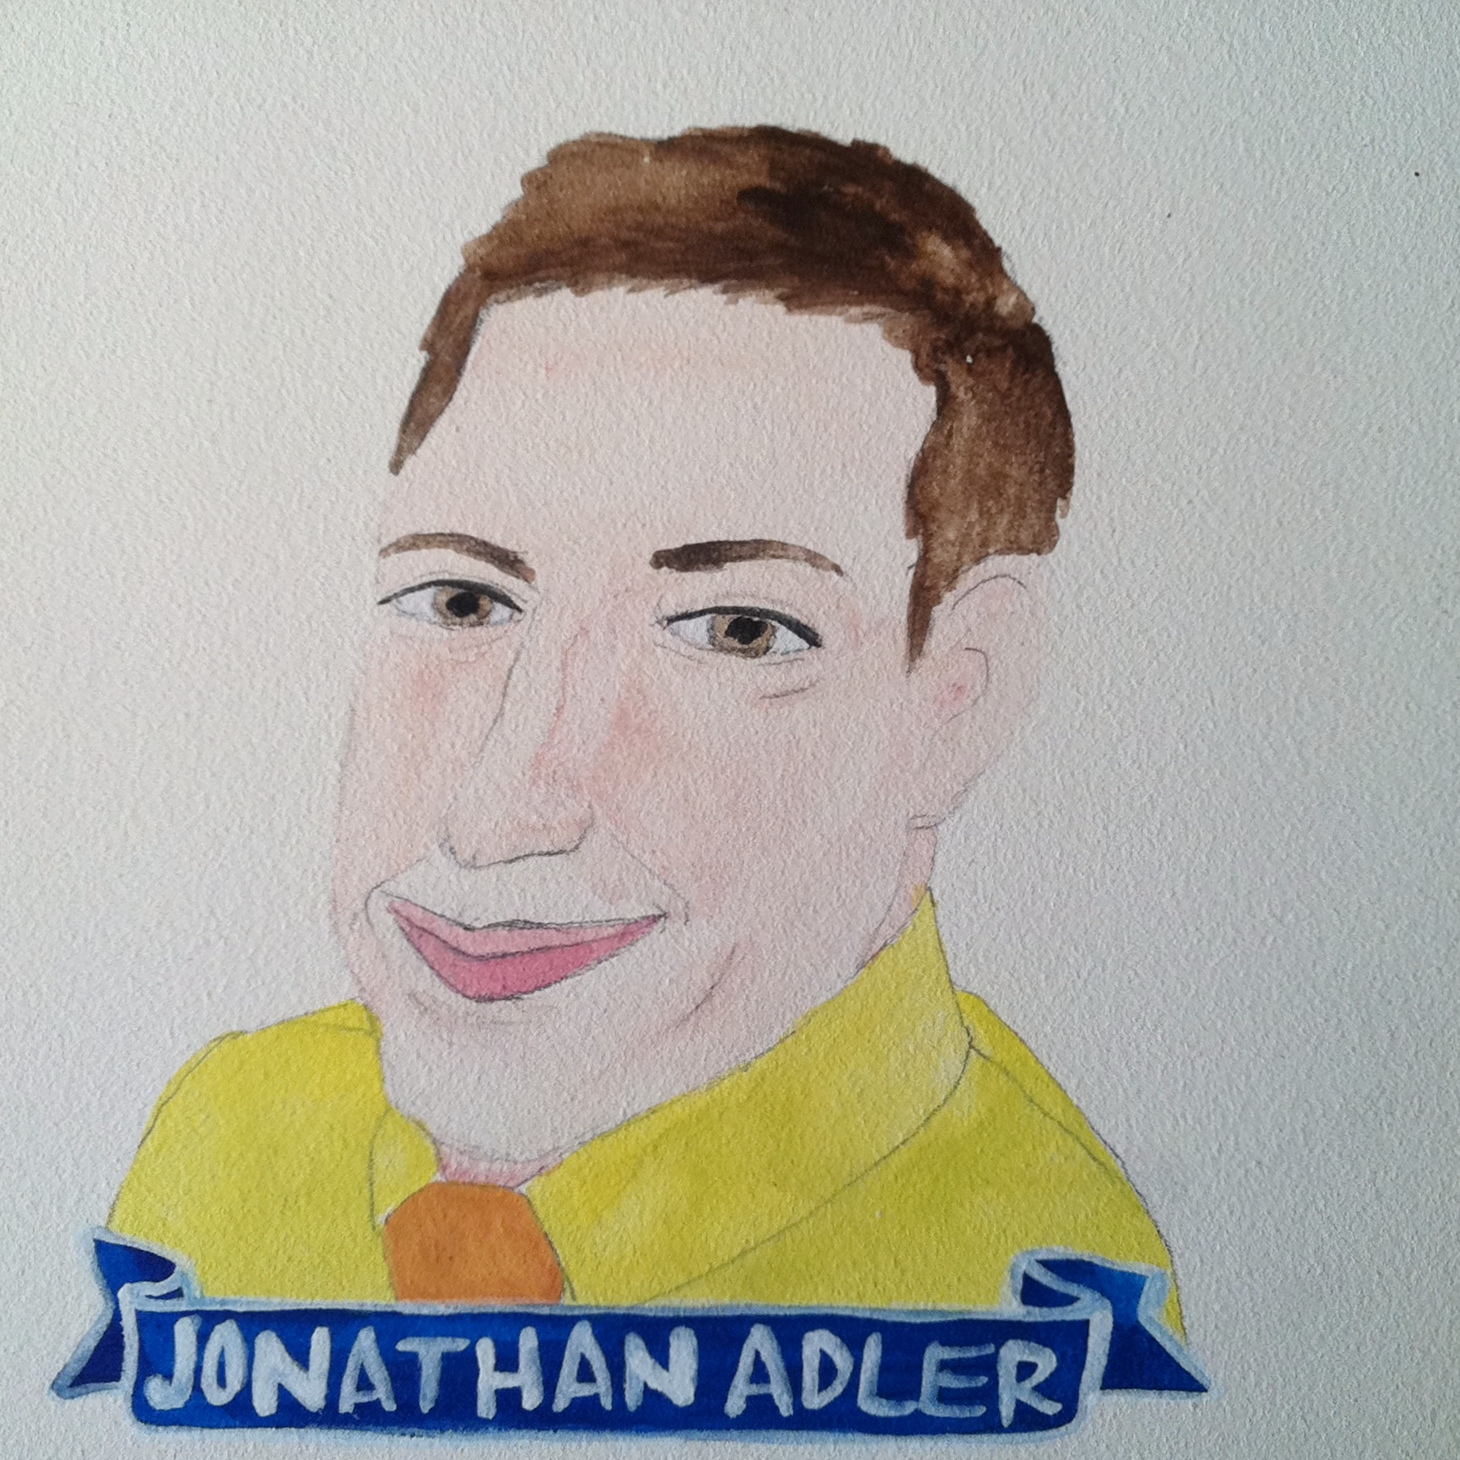 Talent Loves Company at Barbara Archer Gallery: 365 portraits by Lydia Walls - Jonathan Adler